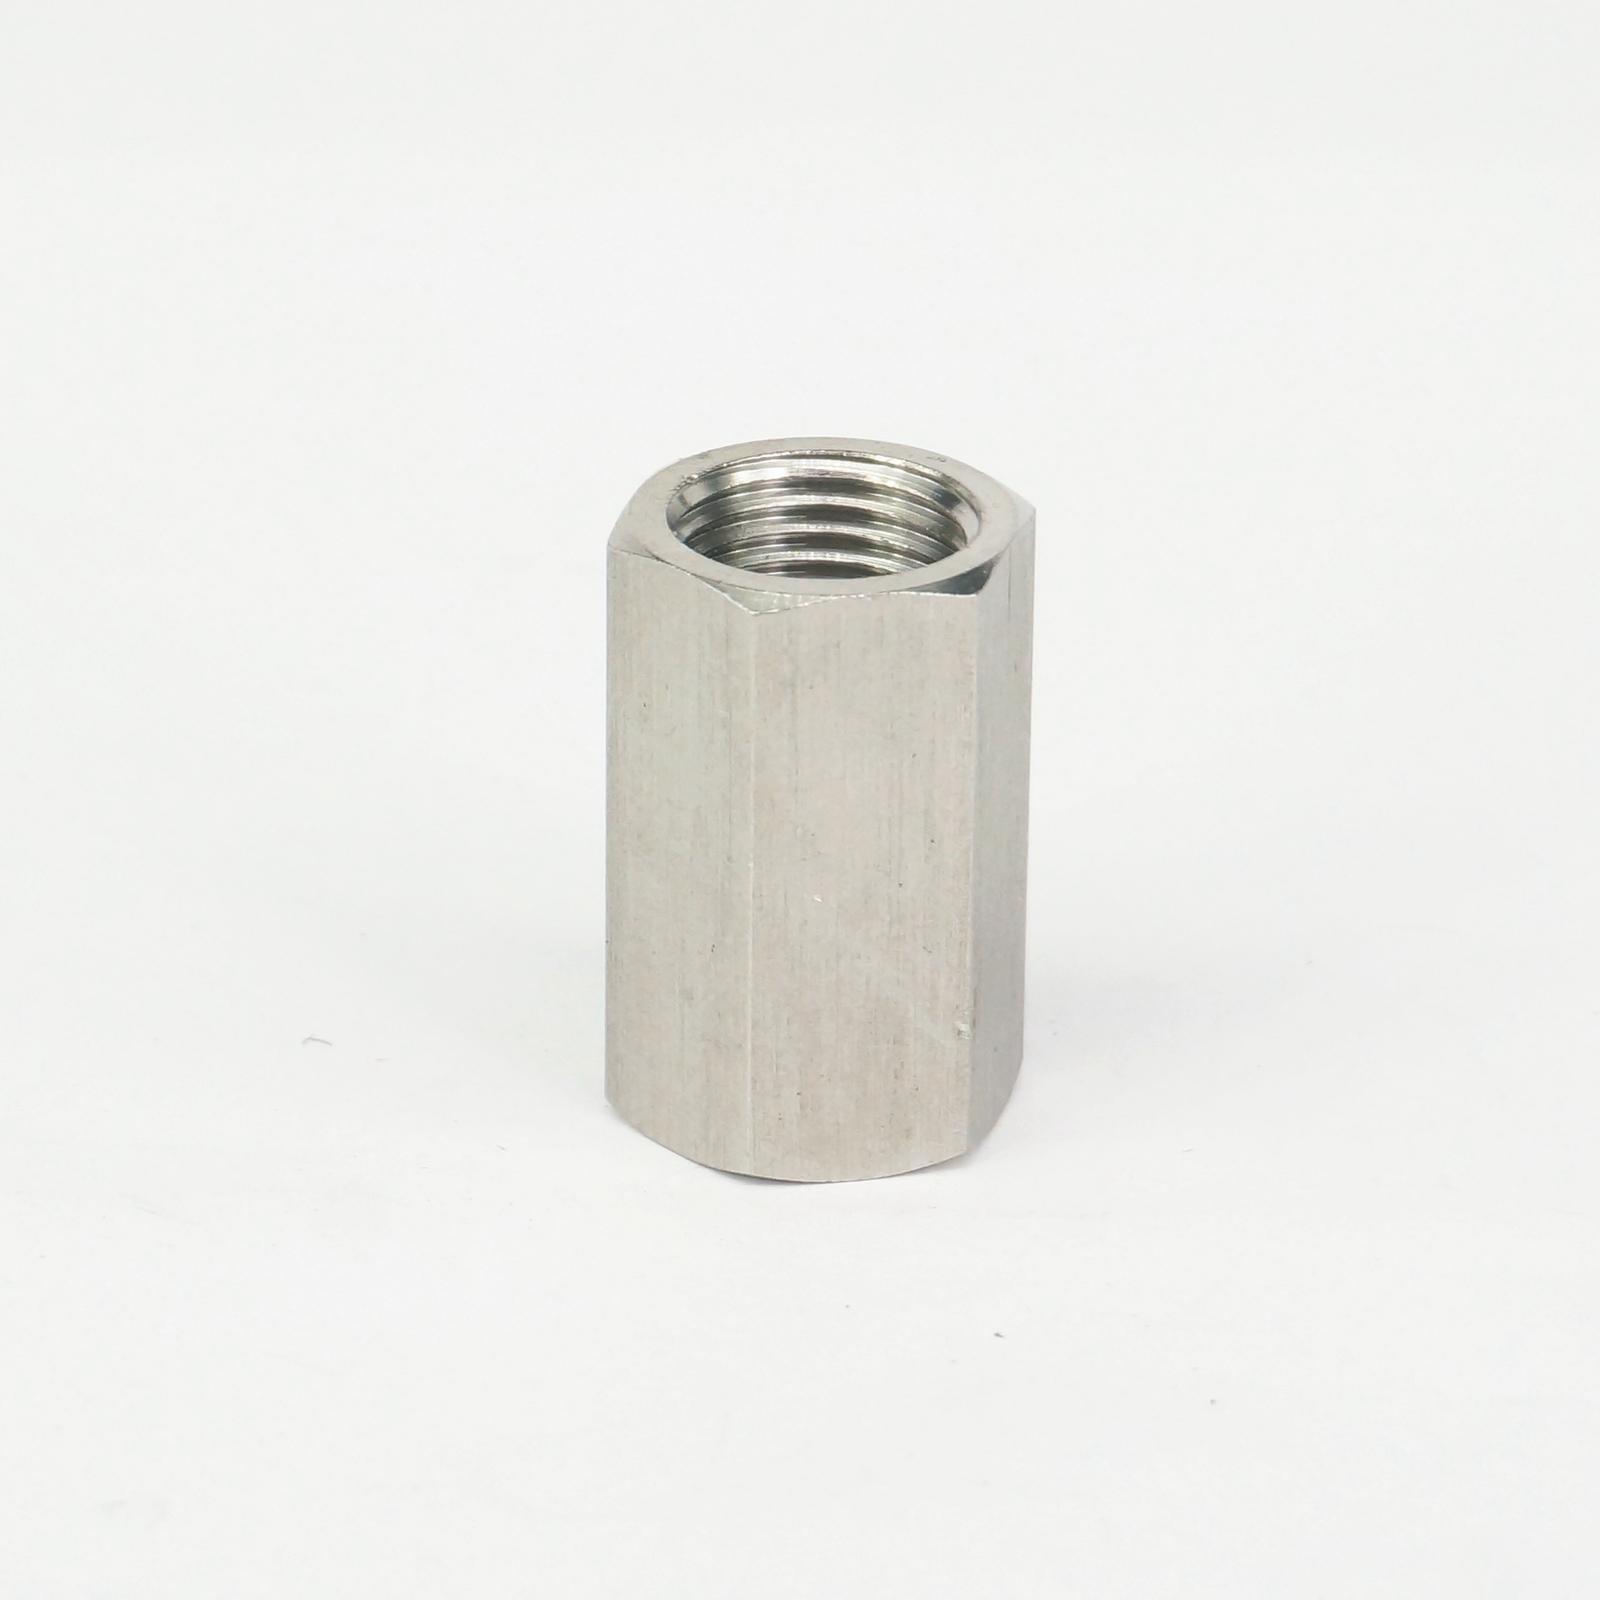 304 Stainless Steel Hex Nut Rod Pipe Fitting Connector Adapter 1/4 BSP Female Threaded Max Pressure 2.5 Mpa